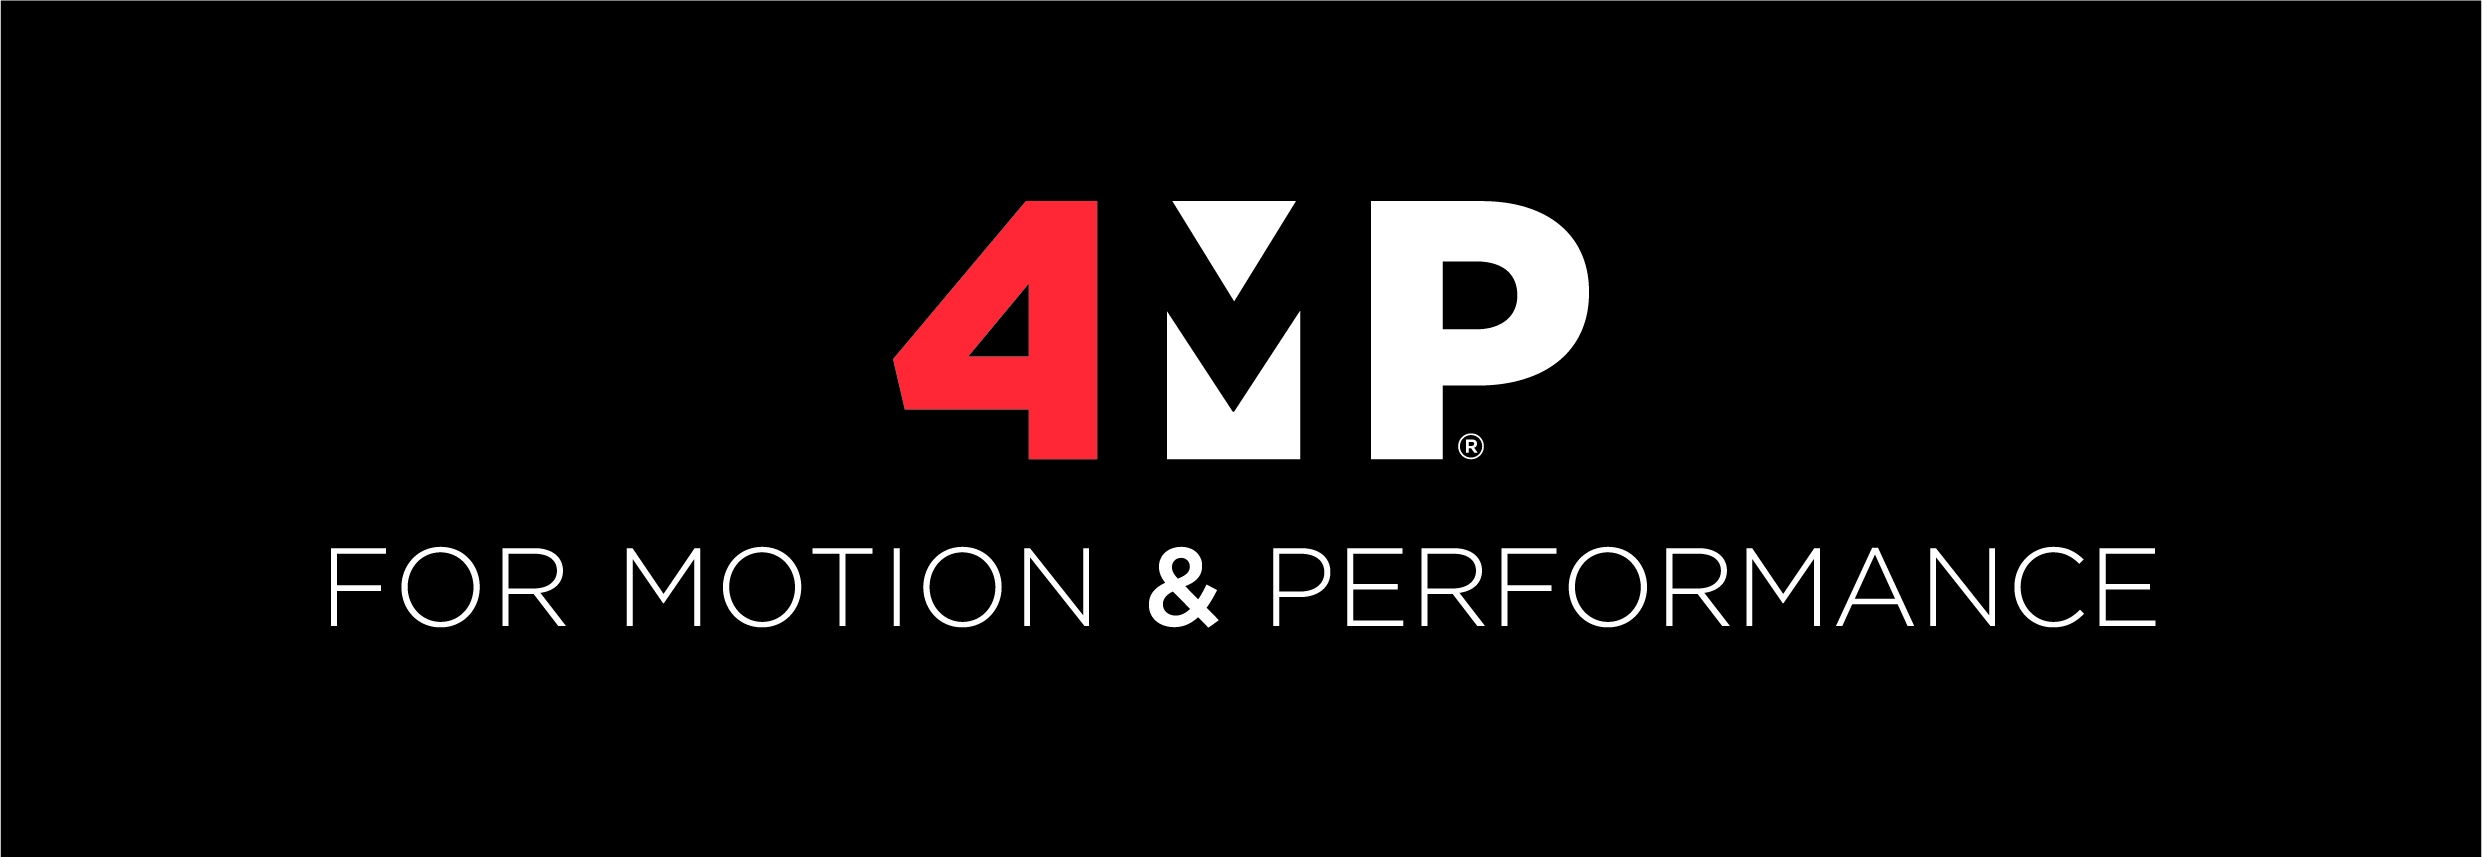 4MP : For Motion & Performance